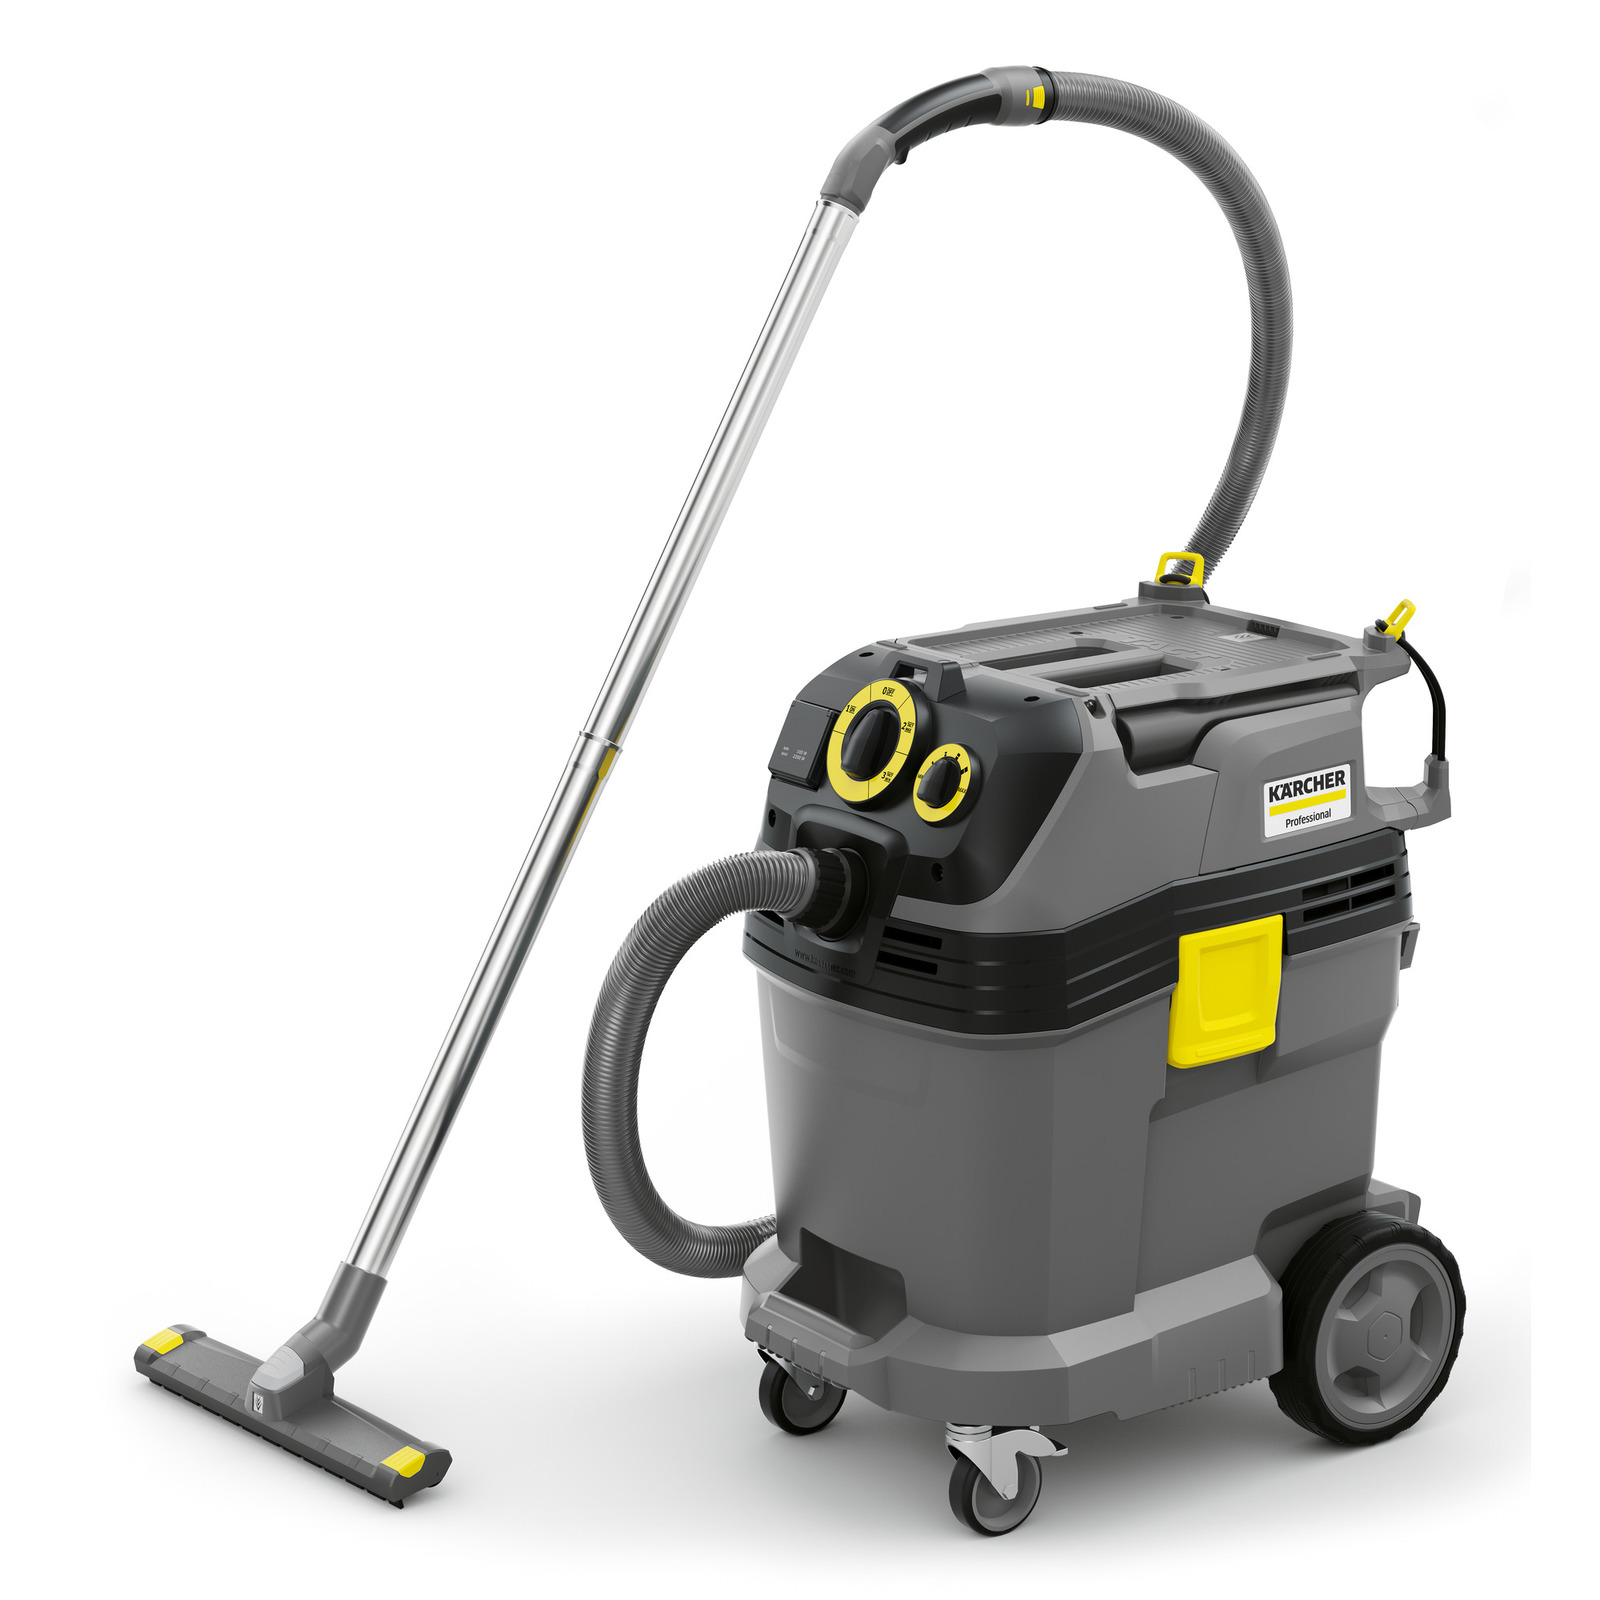 Kärcher NT 40/1 TACT TE L 240V Wet and Dry Vacuum Cleaner - Dispo Products